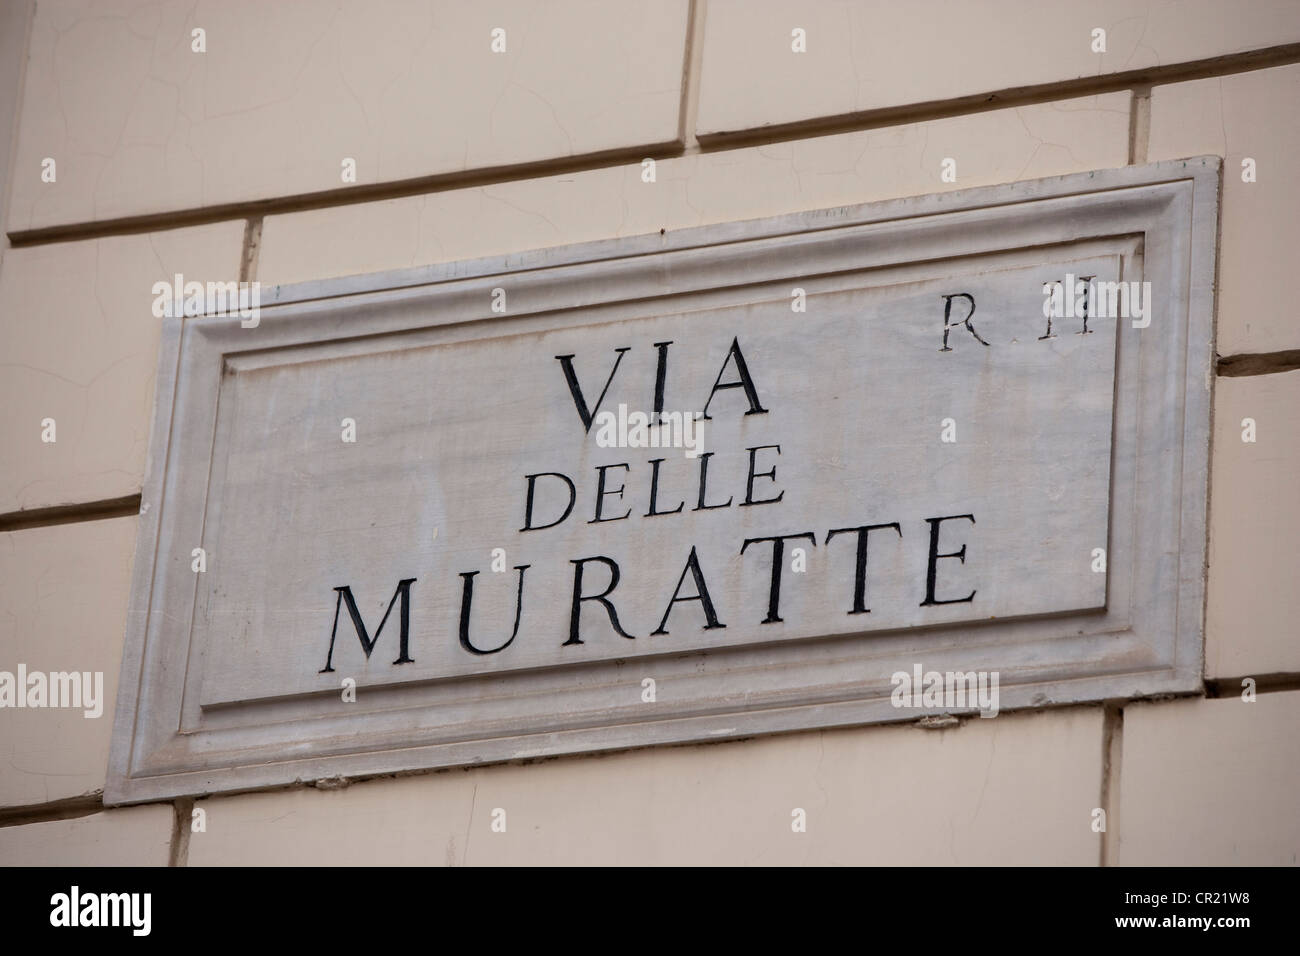 Via delle Muratte sign on wall - Stock Image